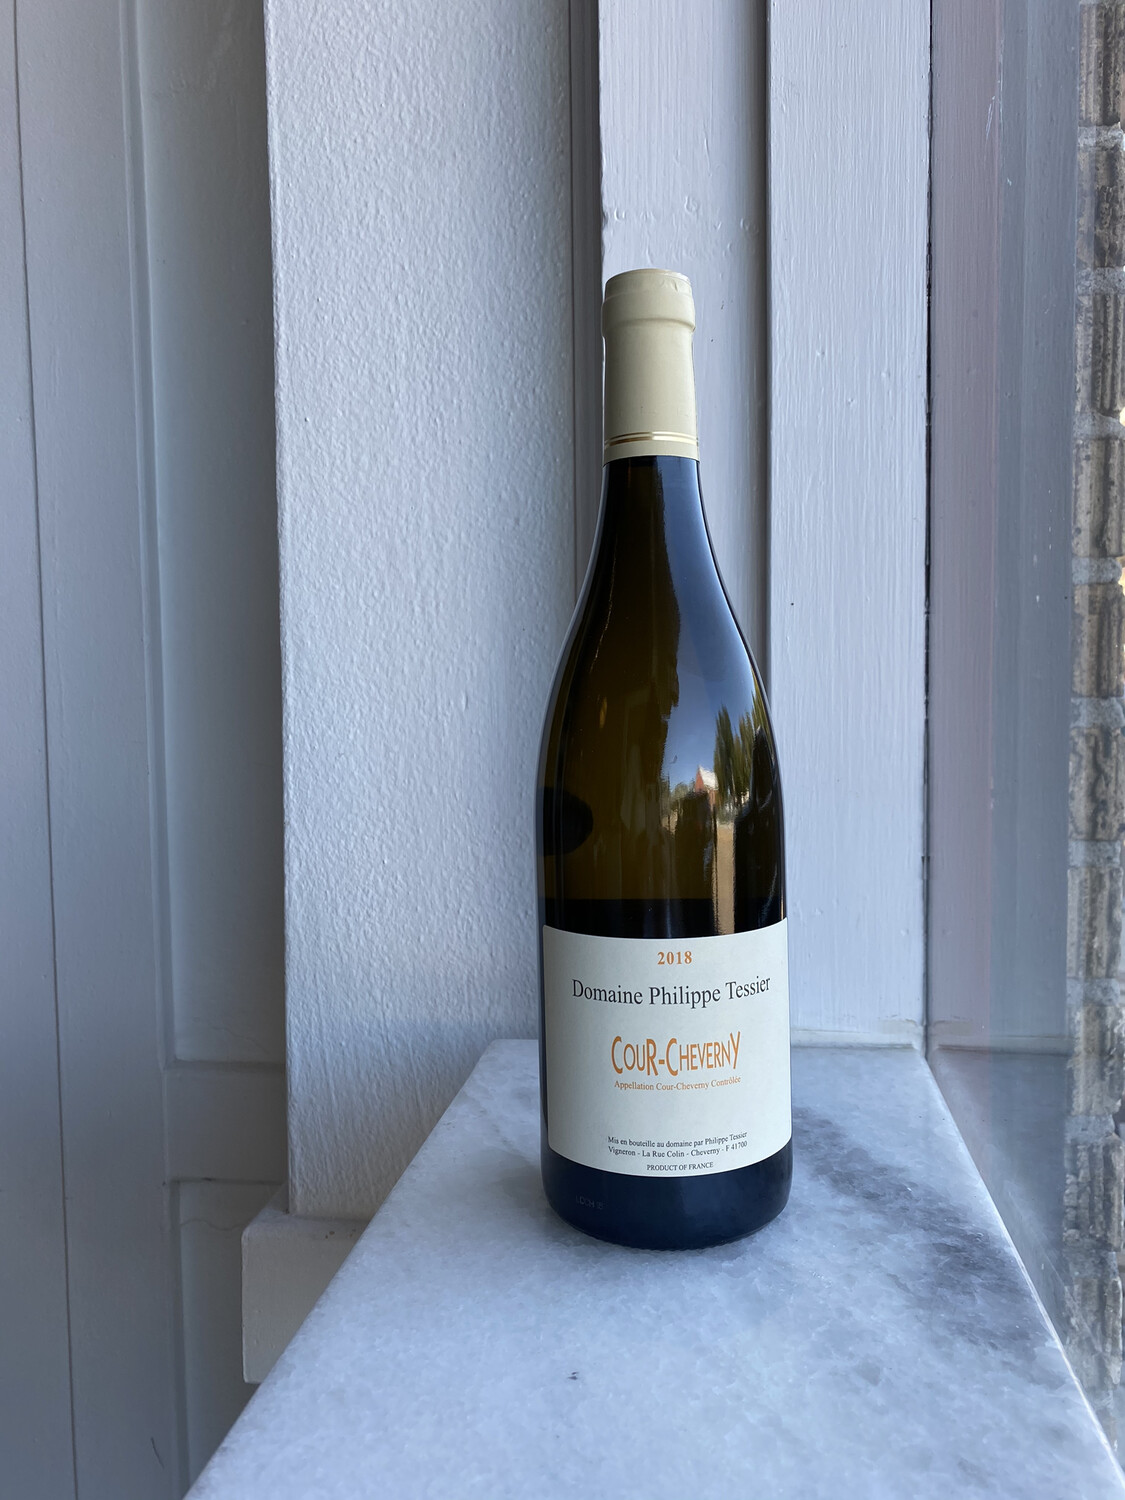 Domaine Philippe Tessier, Cour-Cheverny (2018)